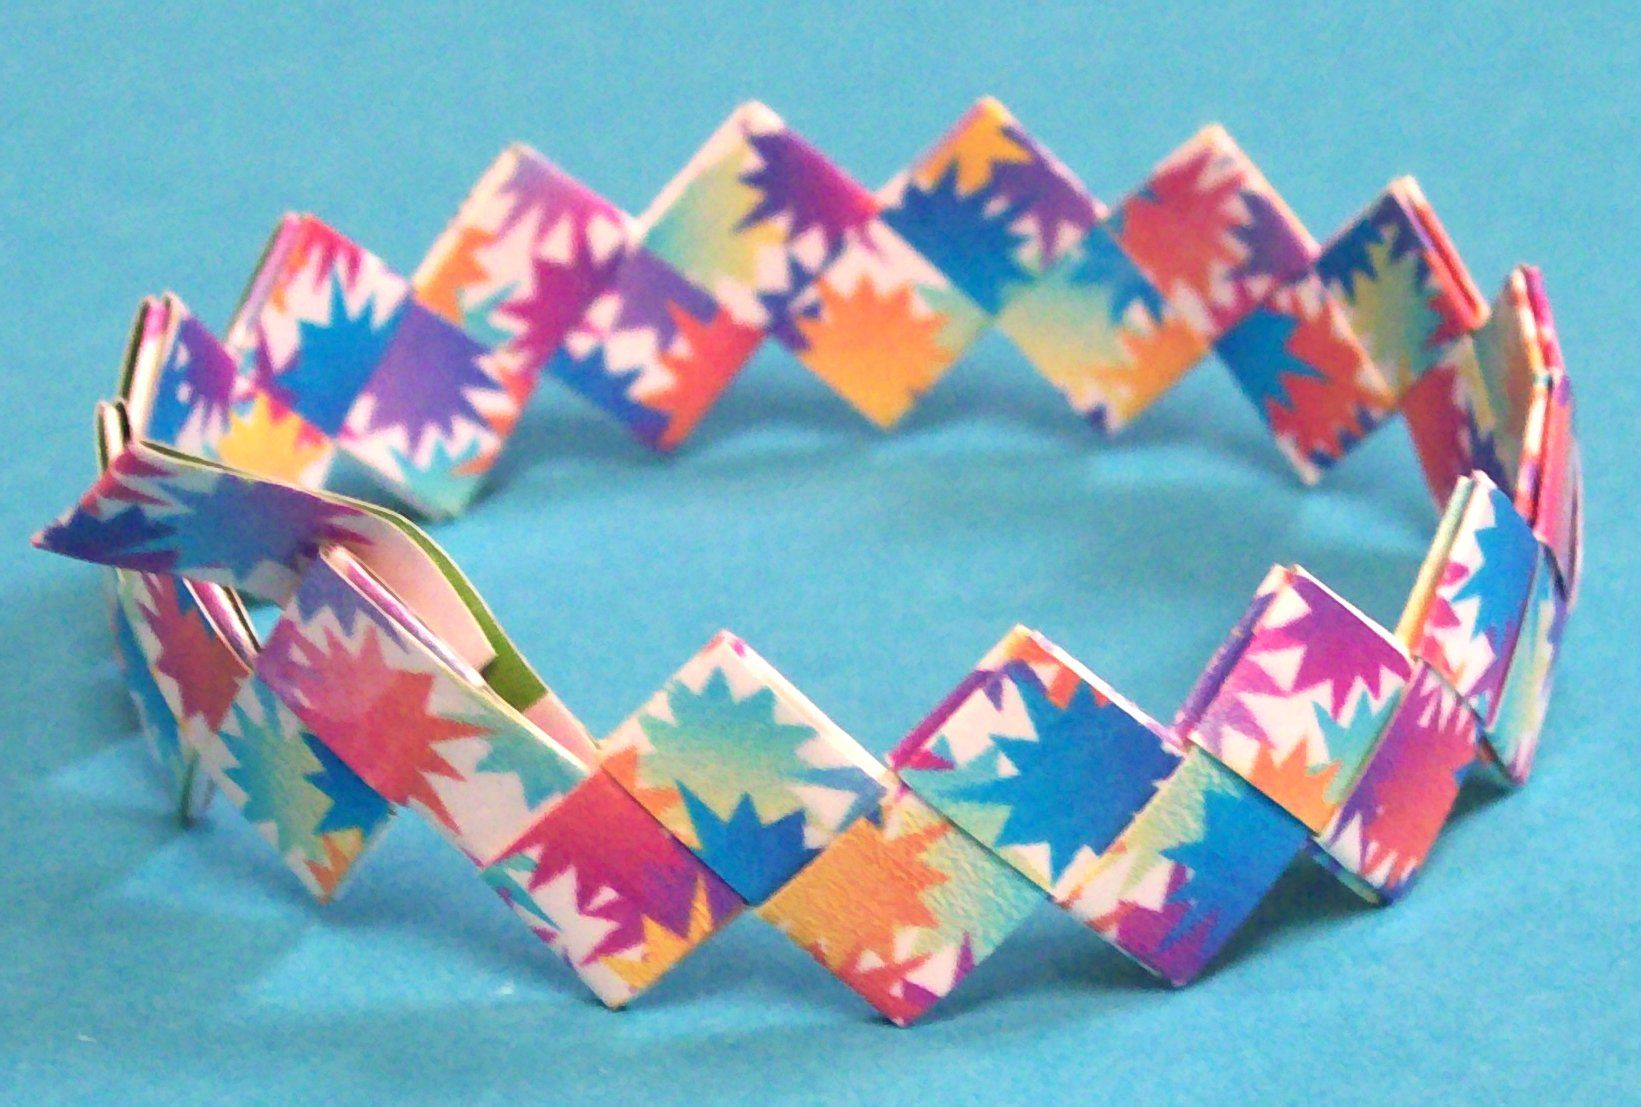 Build a bracelet here is an image of a bracelet made out of the